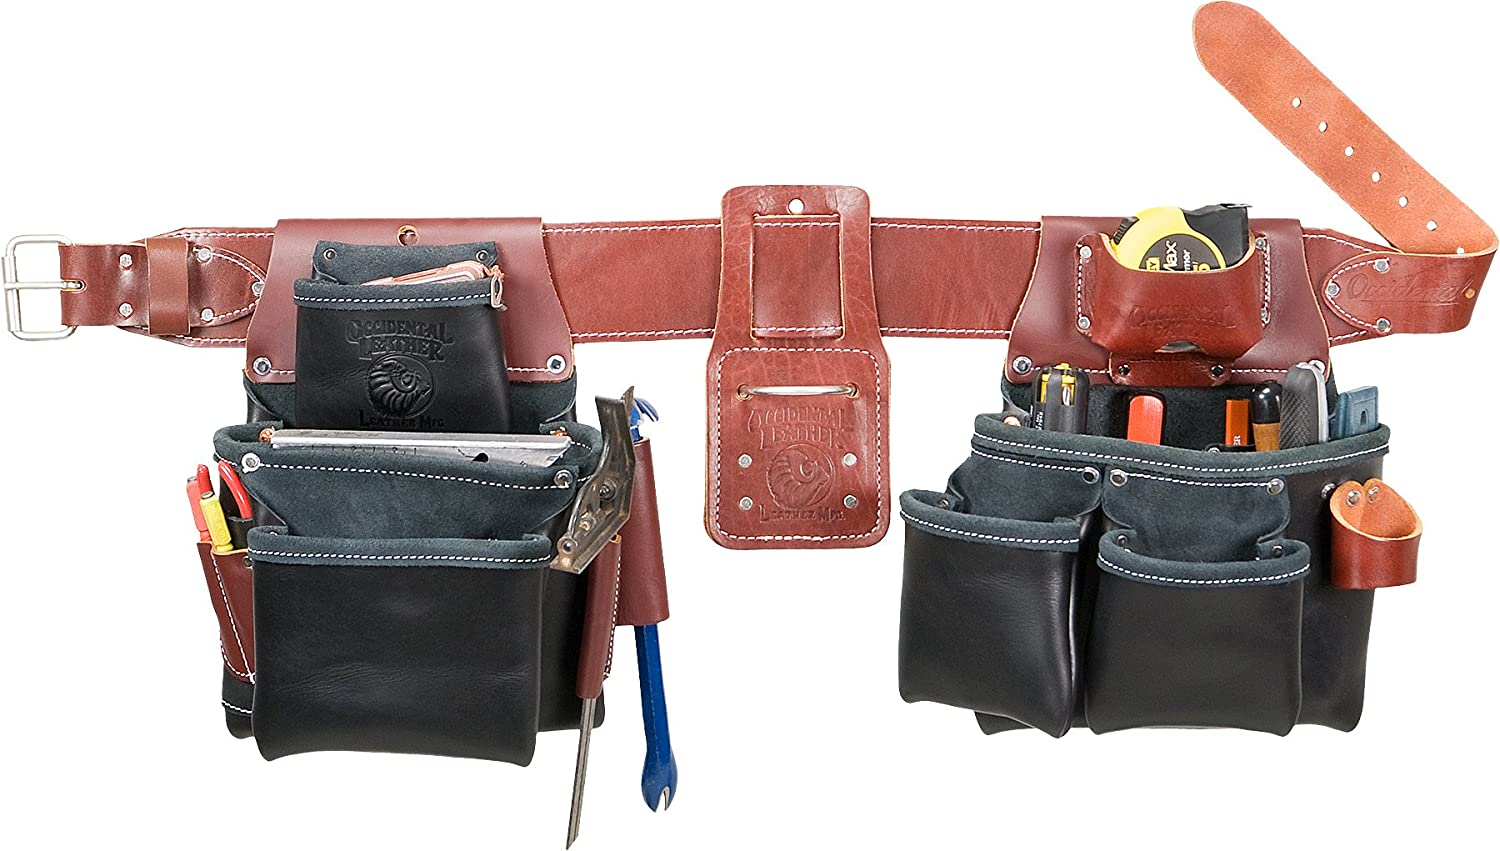 Occidental Leather Deluxe Our shop most popular B5080DB SM Pro Set - Black Framer Small